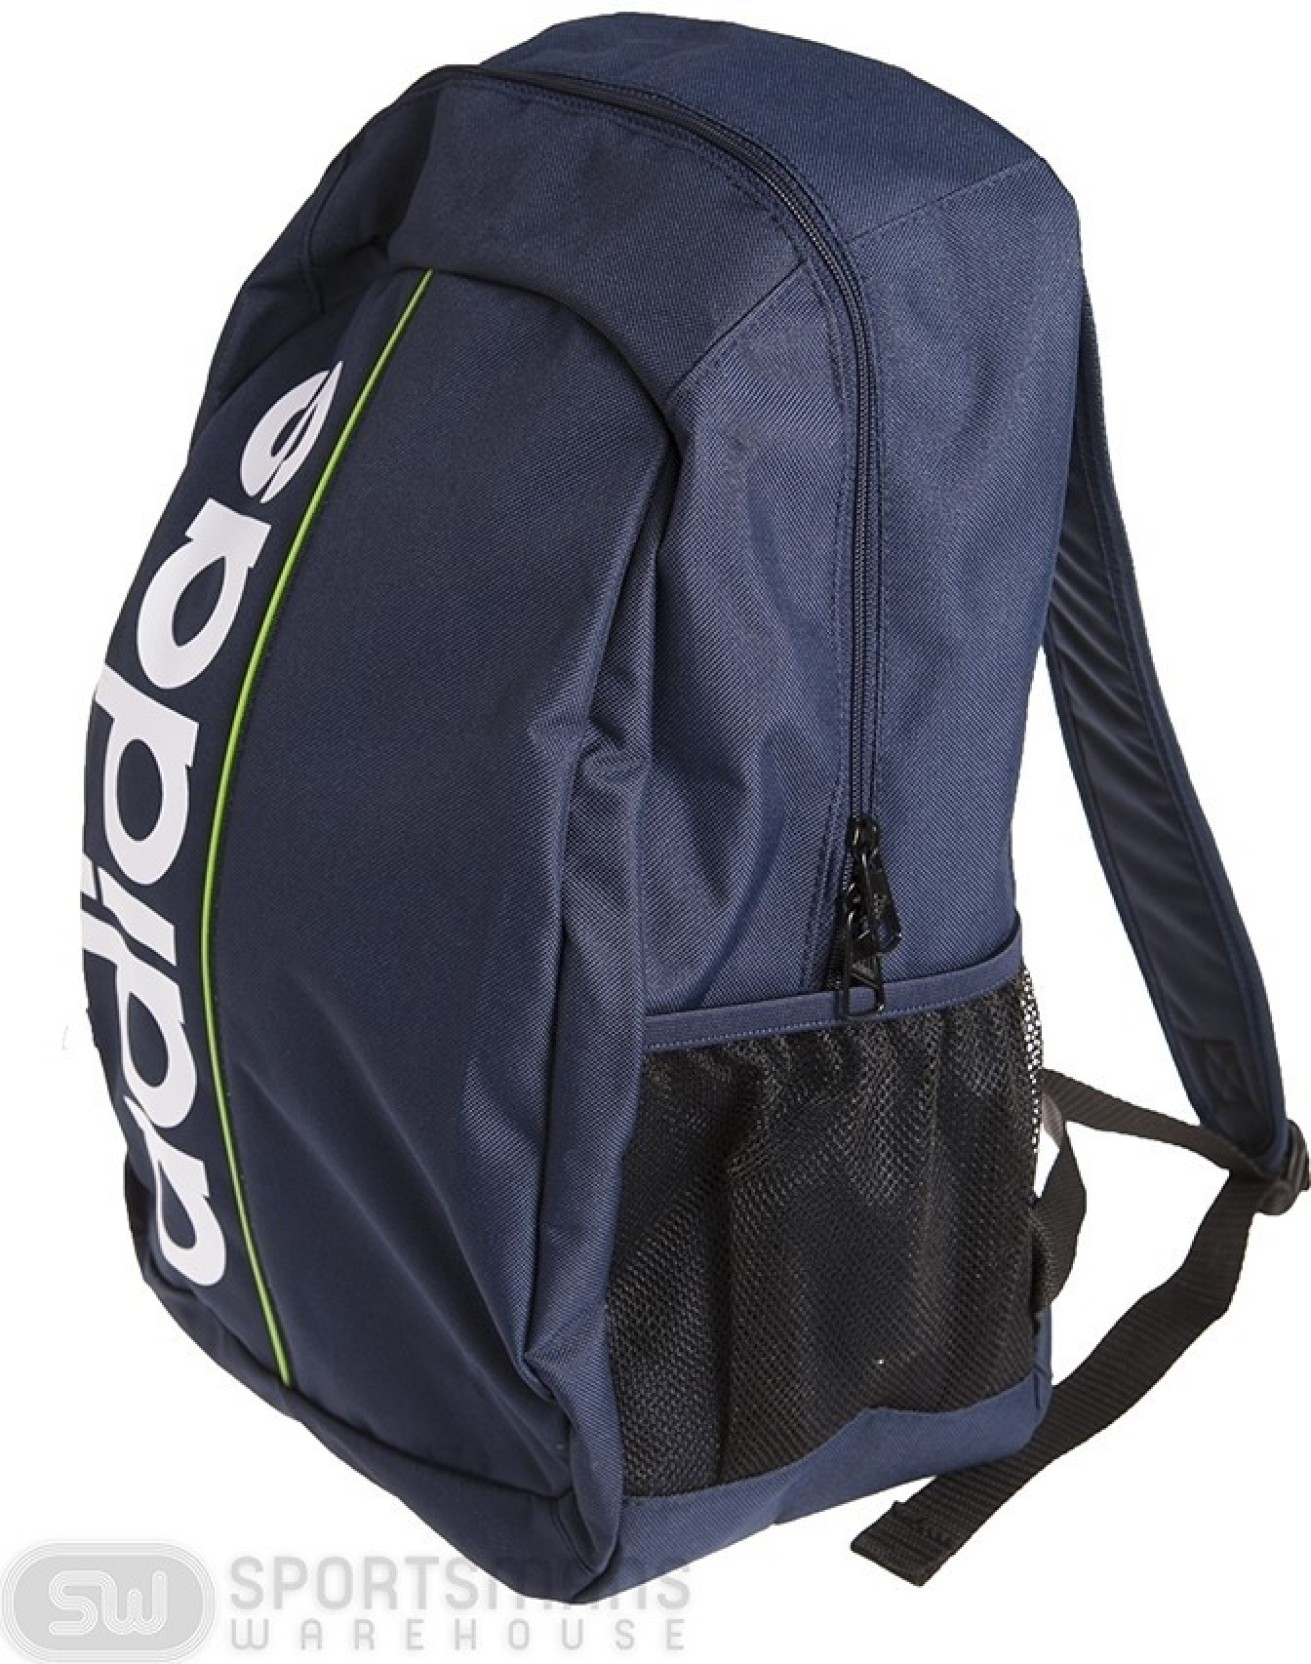 a235acd196 ADIDAS Unisex Linear Essentials Medium Backpack Navy Blue - Price in ...